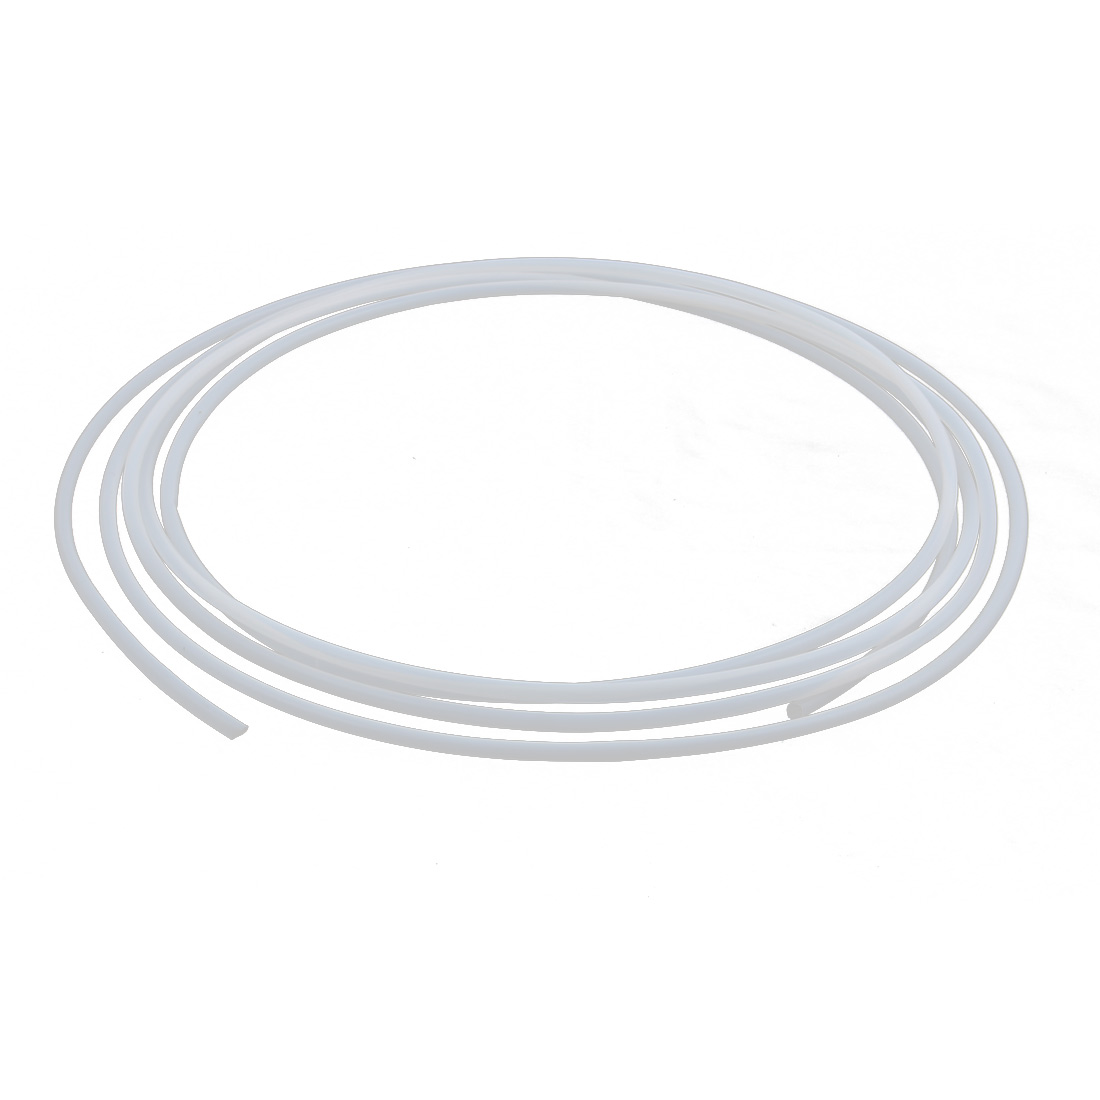 6.54mmx5.94mm PTFE Resistant High Temperature Transparent Tubing 5Meters 16.4Ft